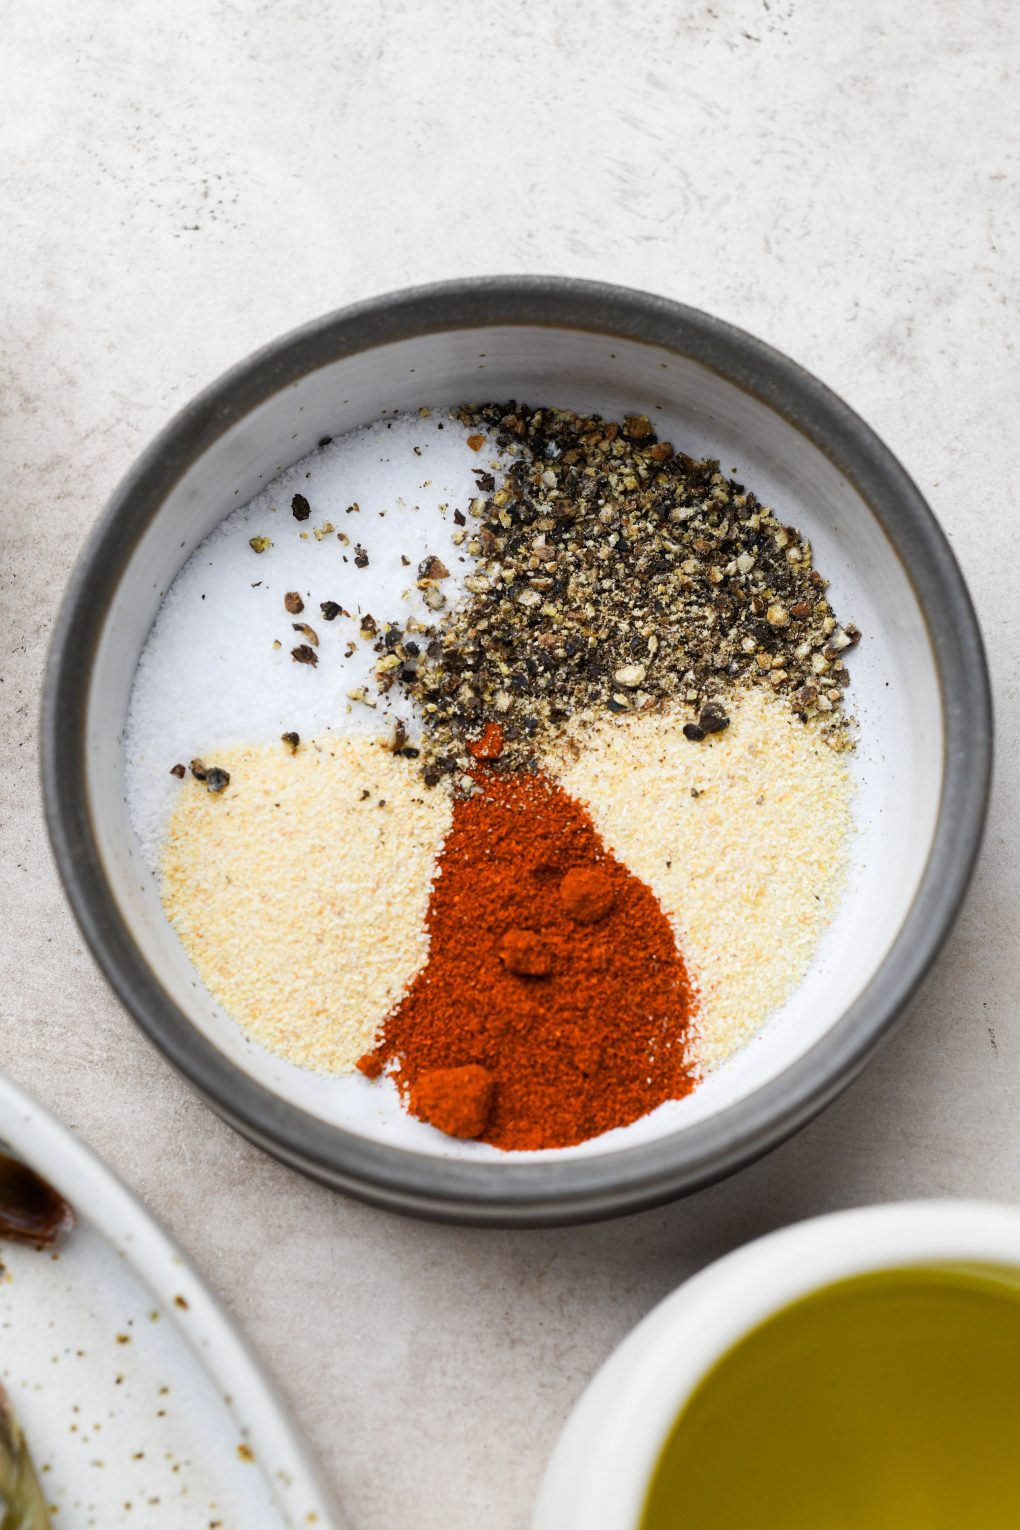 Small shallow bowl filled with a spice blend of paprika, garlic powder, onion powder, salt, and pepper. On a light colored background.